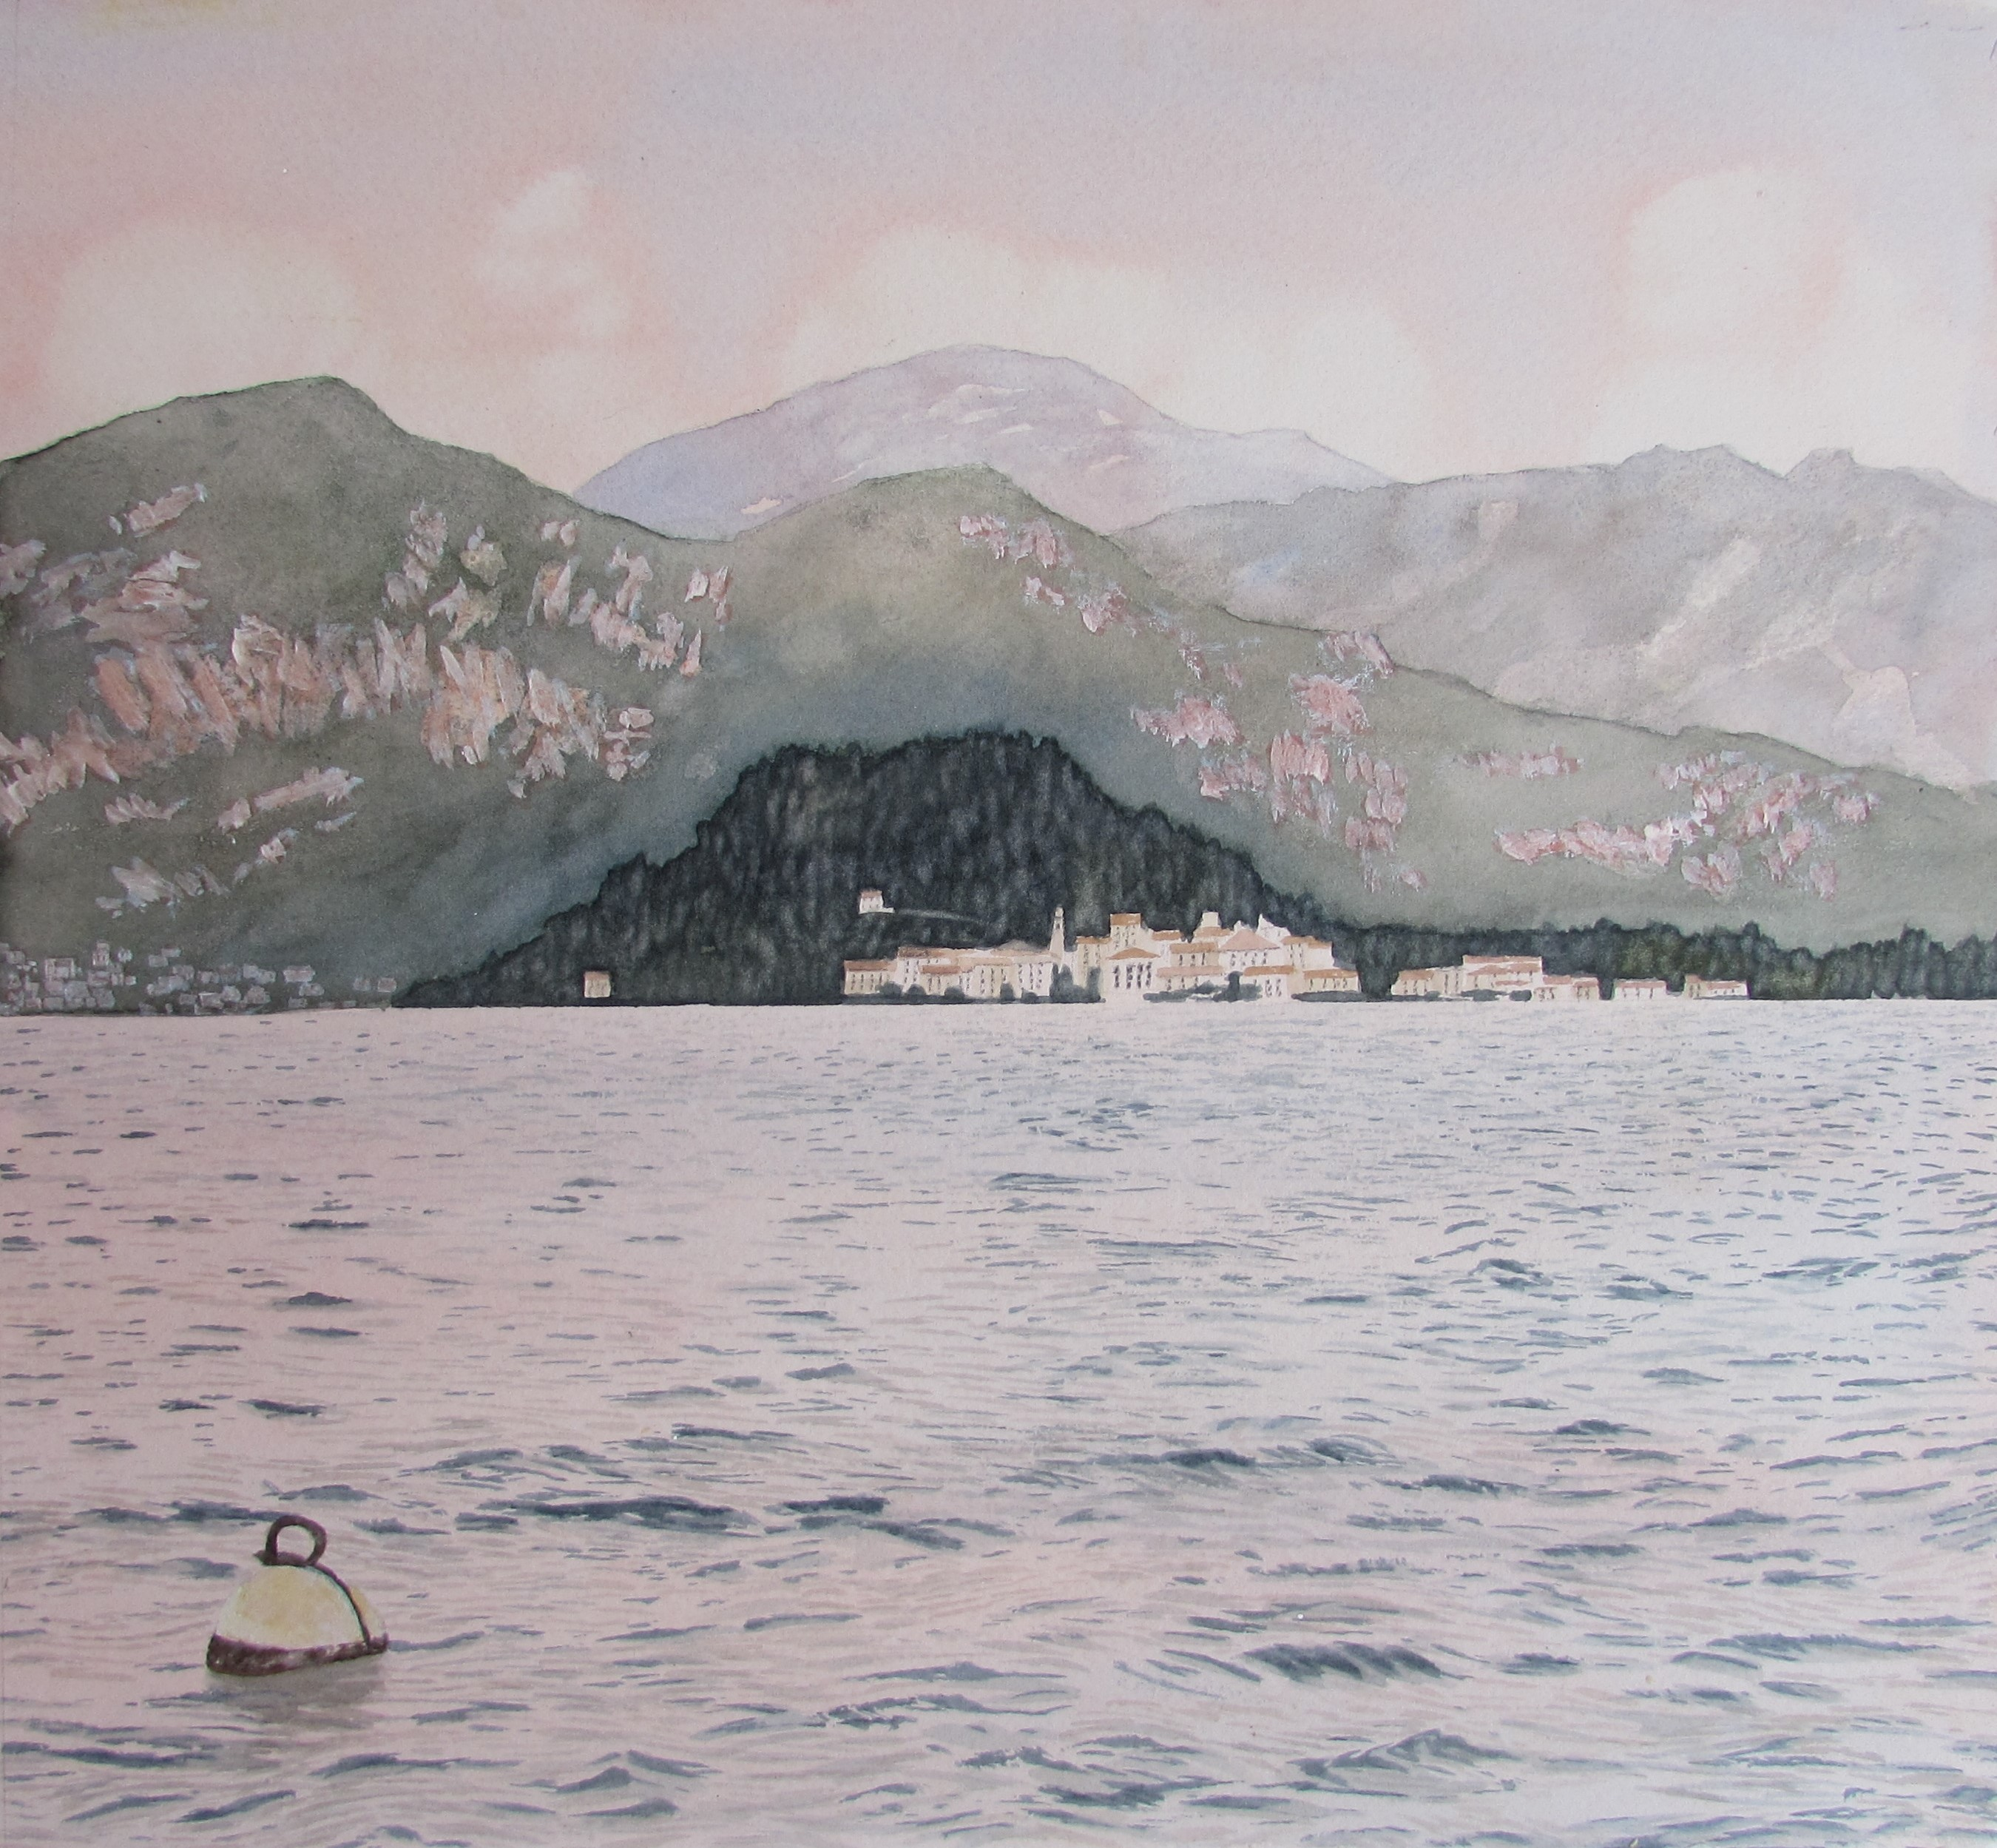 Lake Como 1, View of Bellagio with buoy